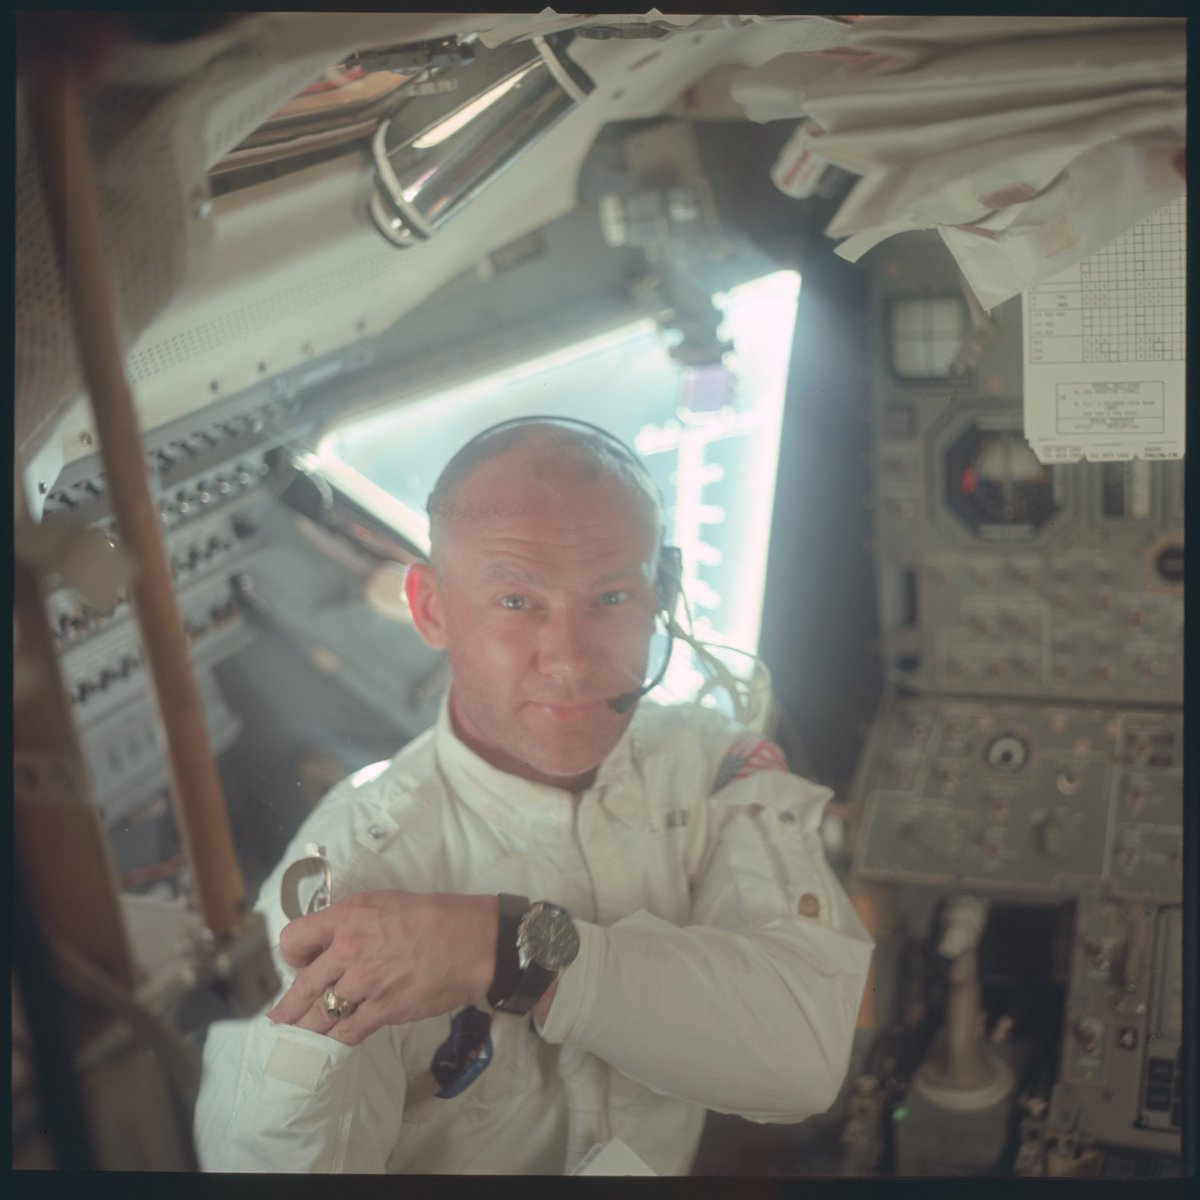 My favorite #RightStuff mode pic: ( could be an ad for @ray_ban or @omegawatches )  @TheRealBuzz aka #BuzzLightyear  @NASA #Apollo11<br>http://pic.twitter.com/X7KtHbdyyi